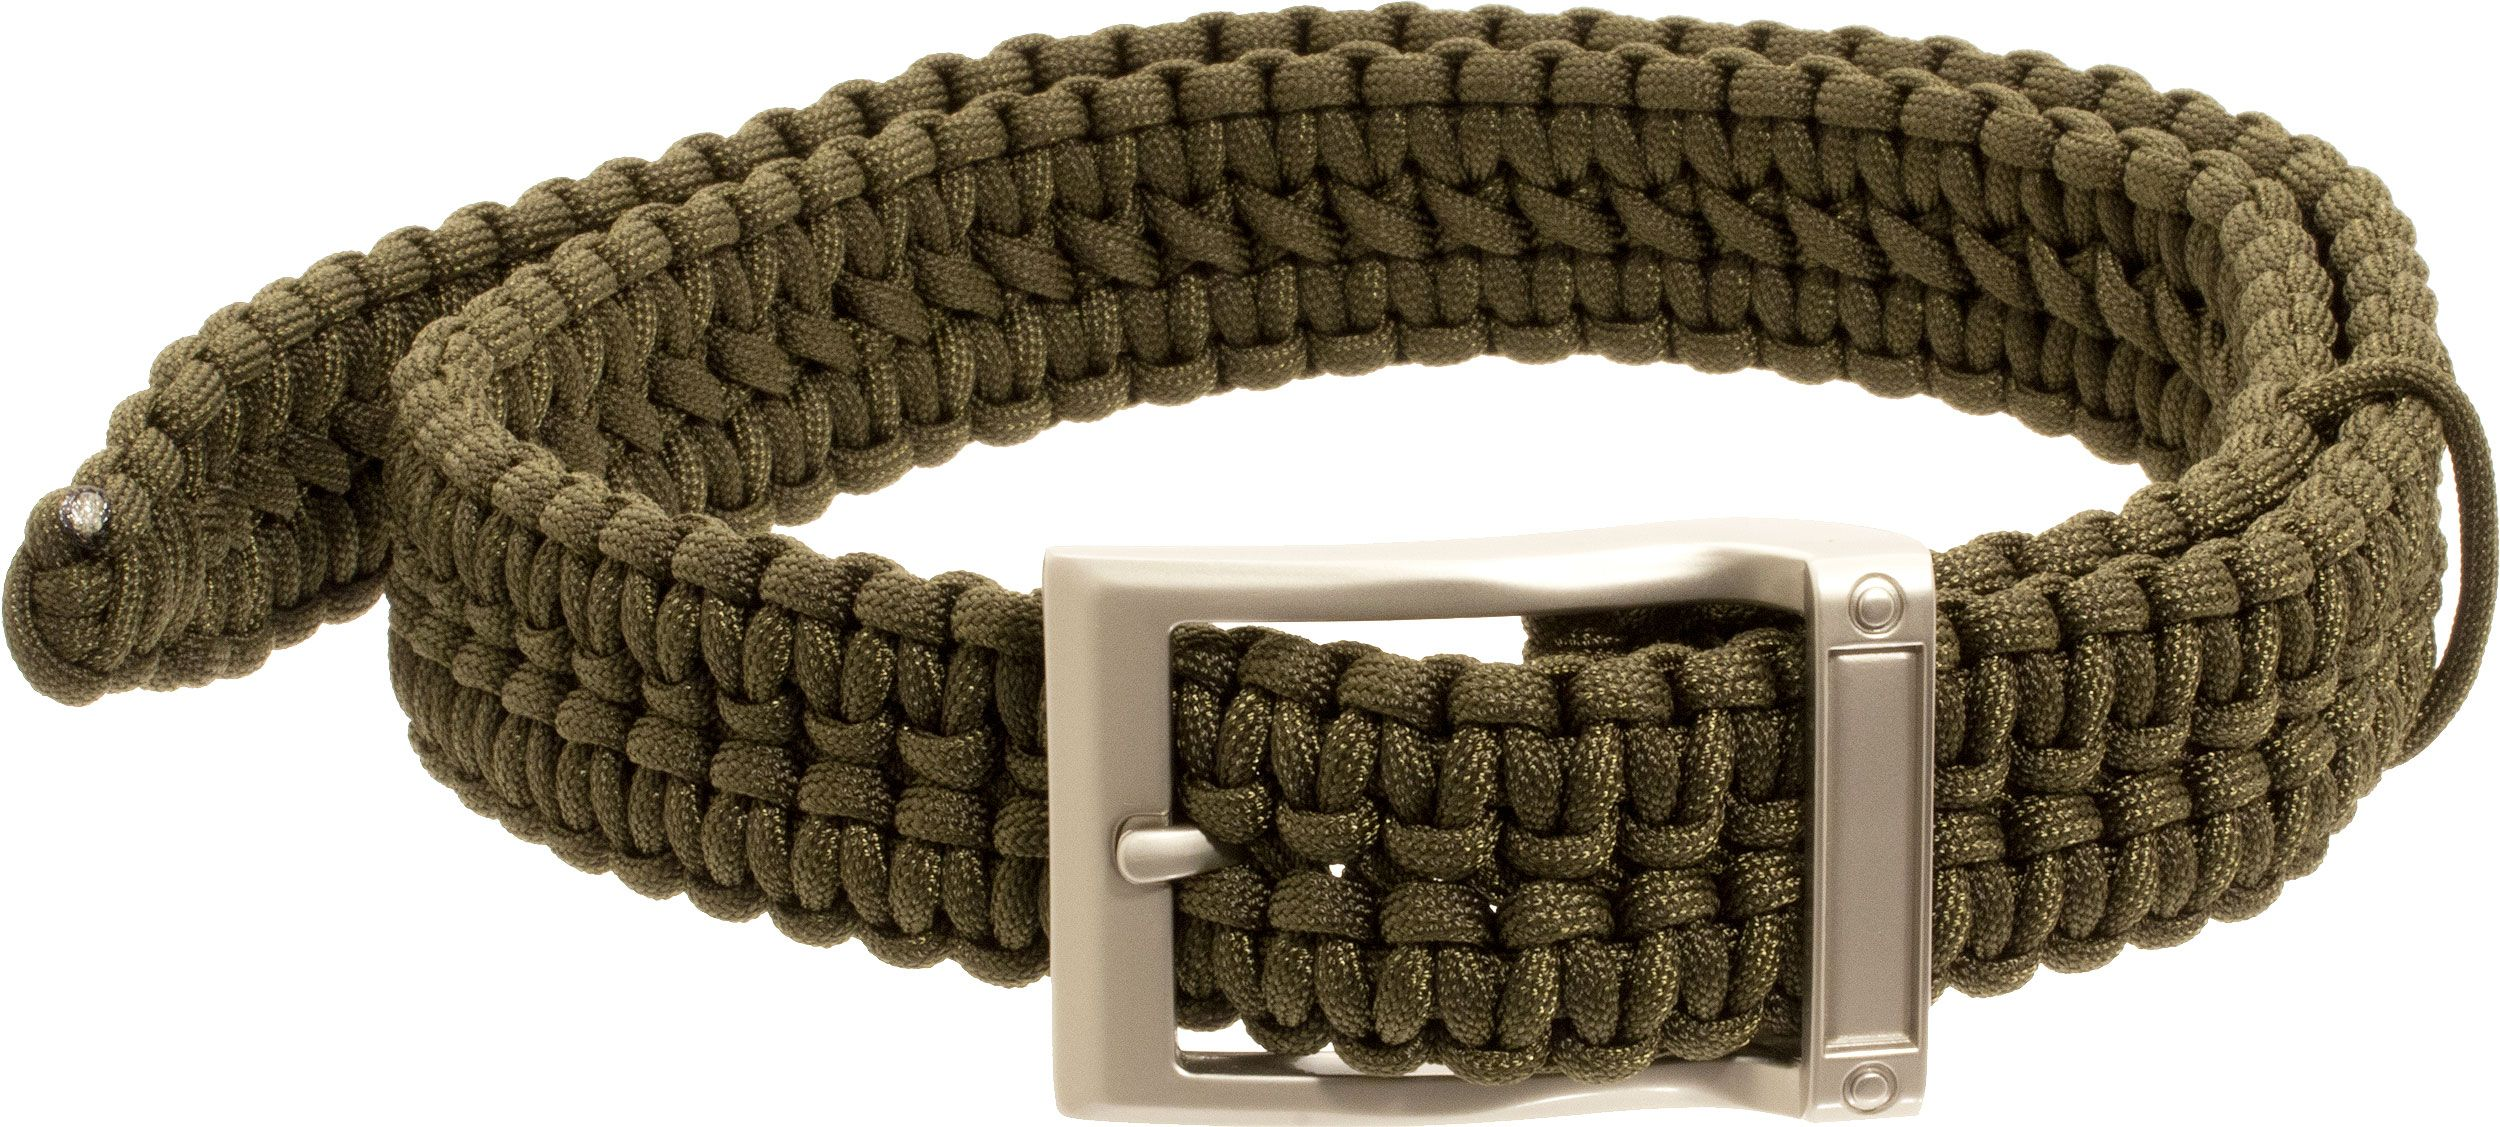 Timberline Paracord Survival Belt, Olive, Small (5109)